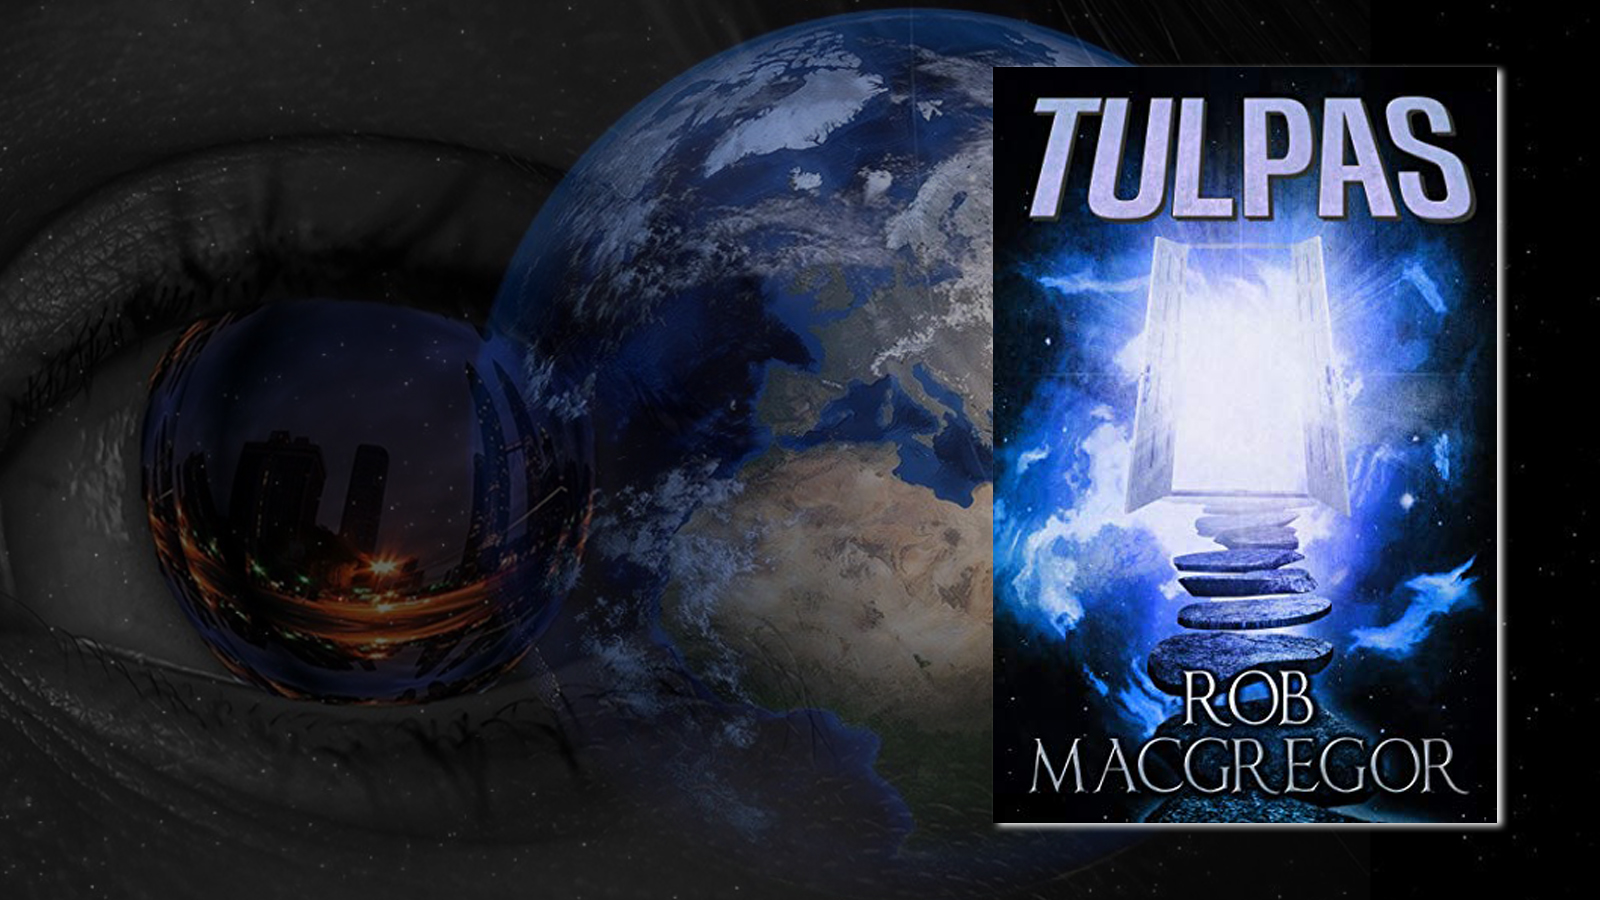 Sci Fi Novel Tulpas Gives Readers a Thrill from the Start